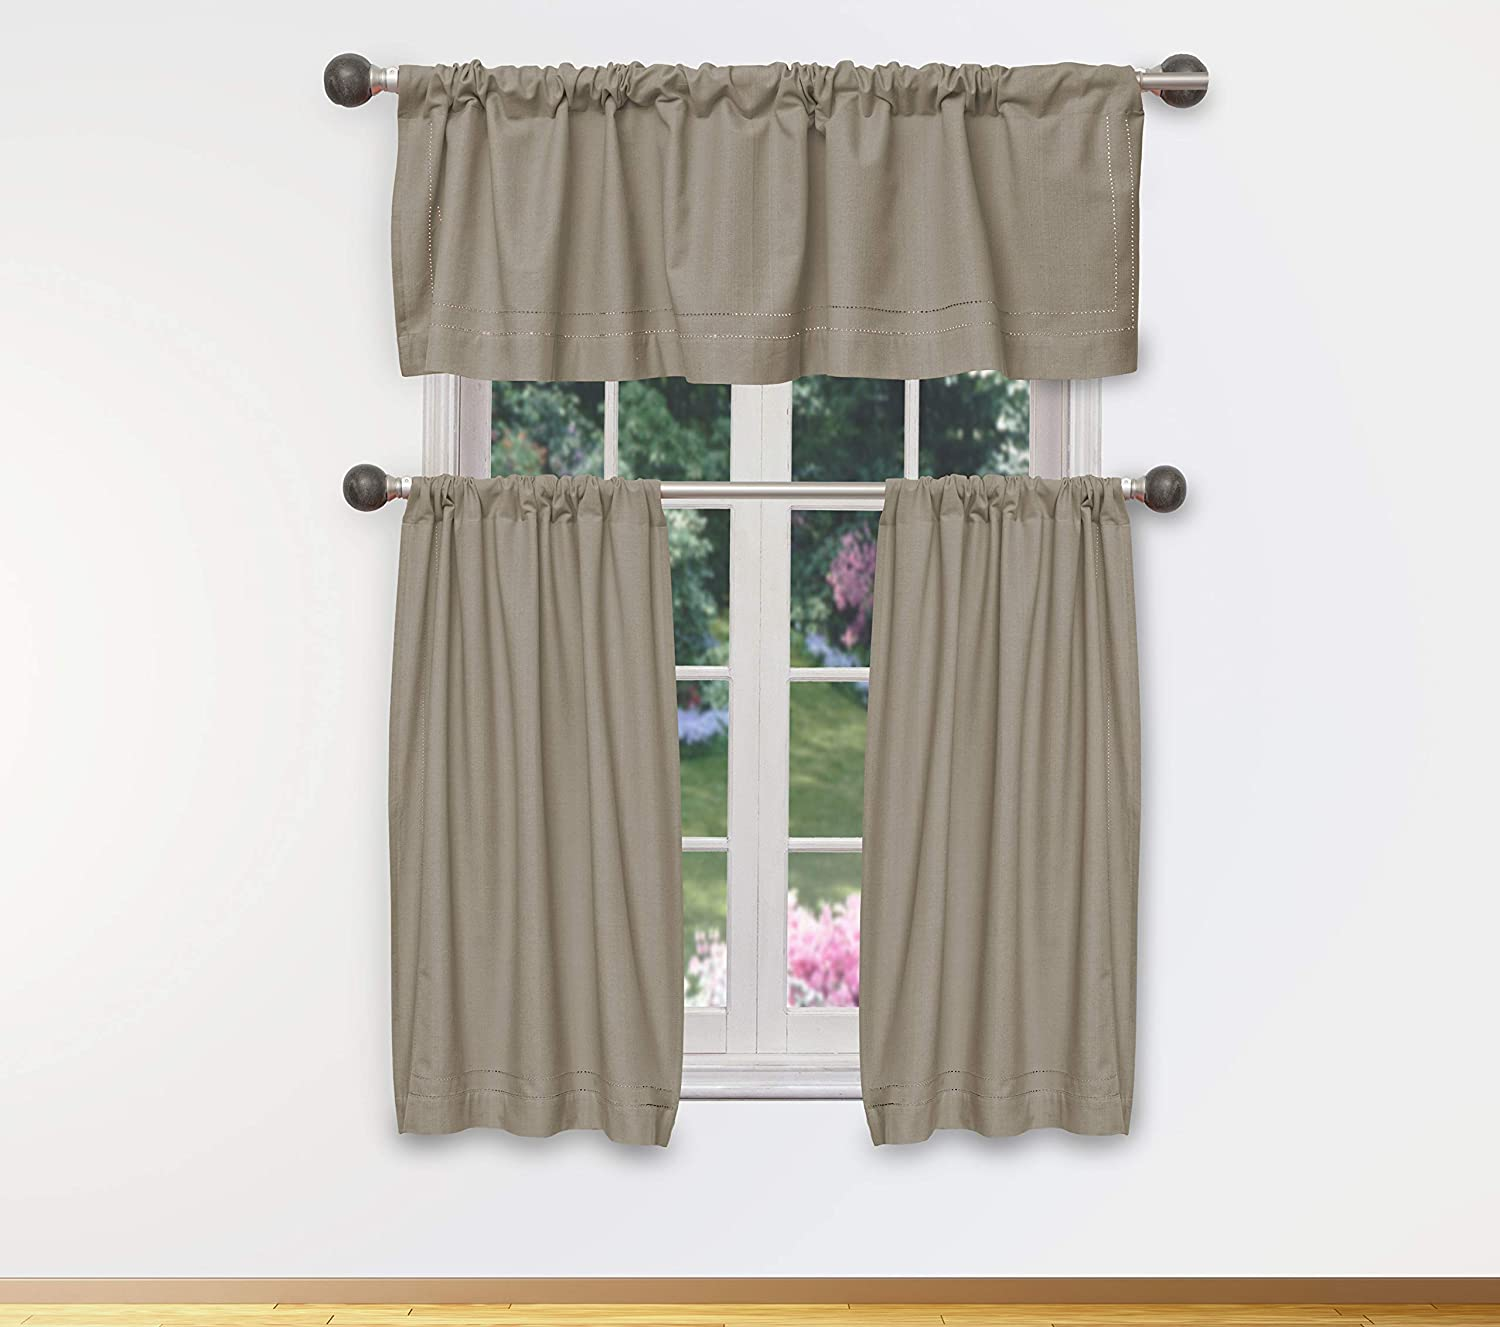 Laundry or Bedroom Bath 58 X 15 Inch Cafe Vera Neumann Miles Solid Linen Textured Curtain Valance Set for Small Kitchen Window